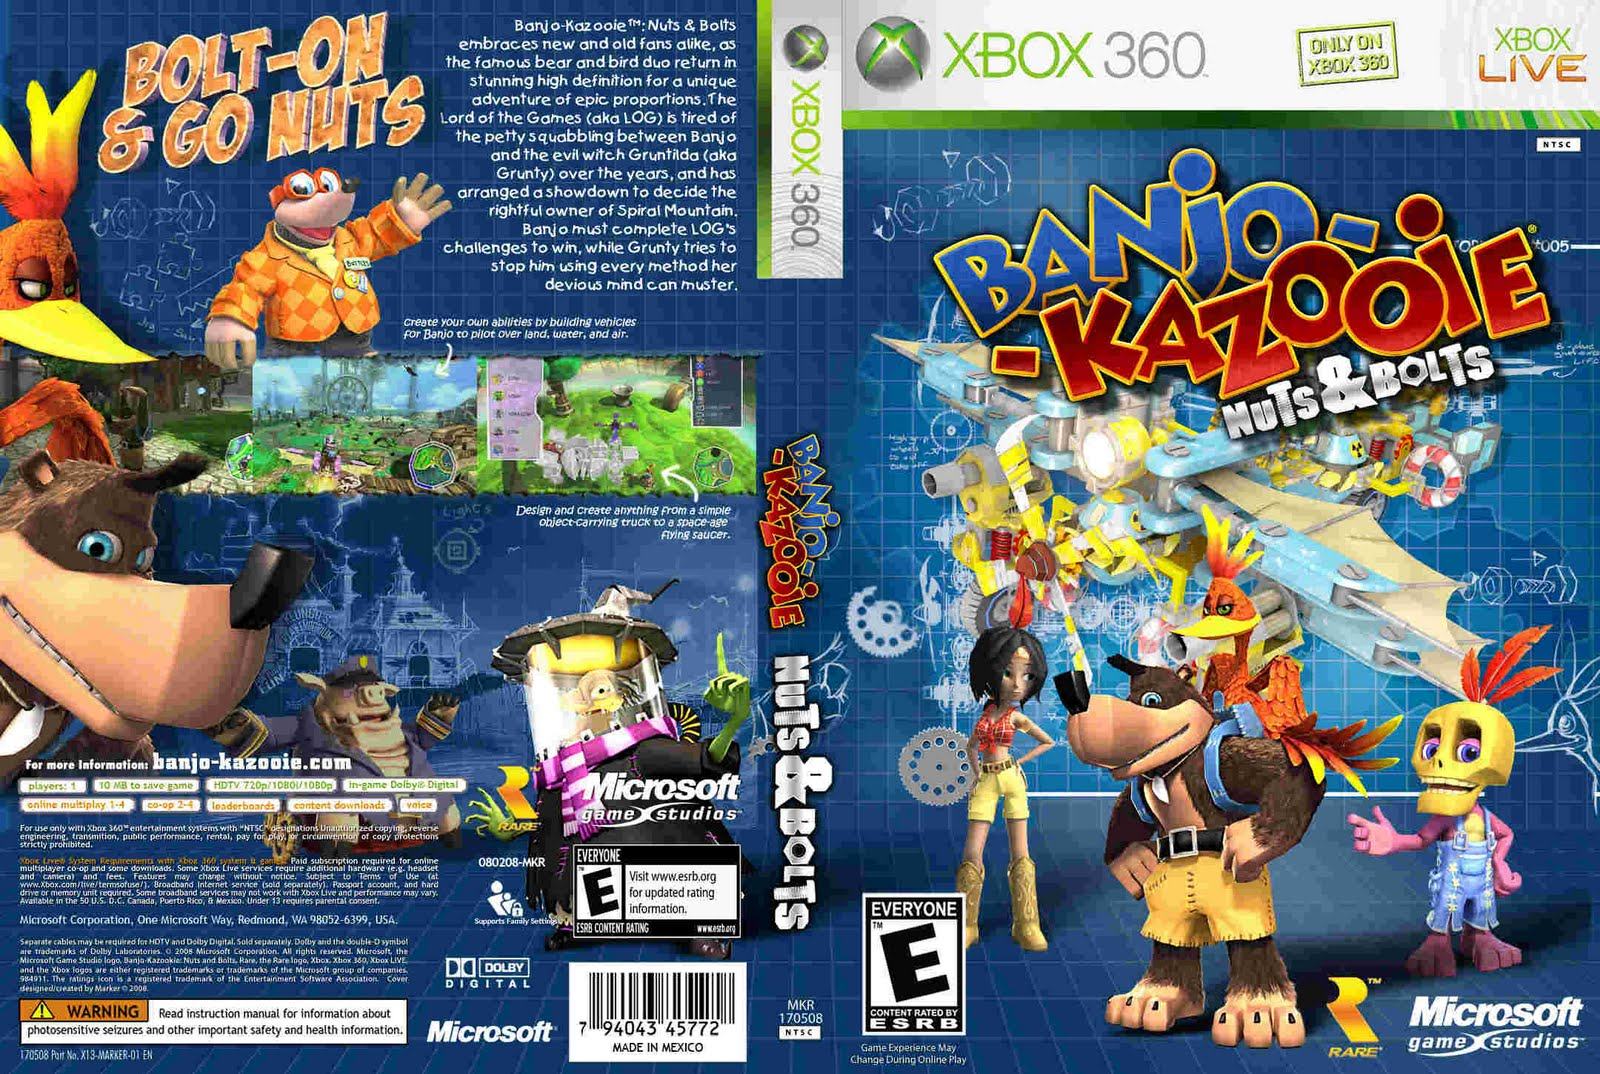 Games Covers Banjo Kazooie Nuts Bolts Xbox 360